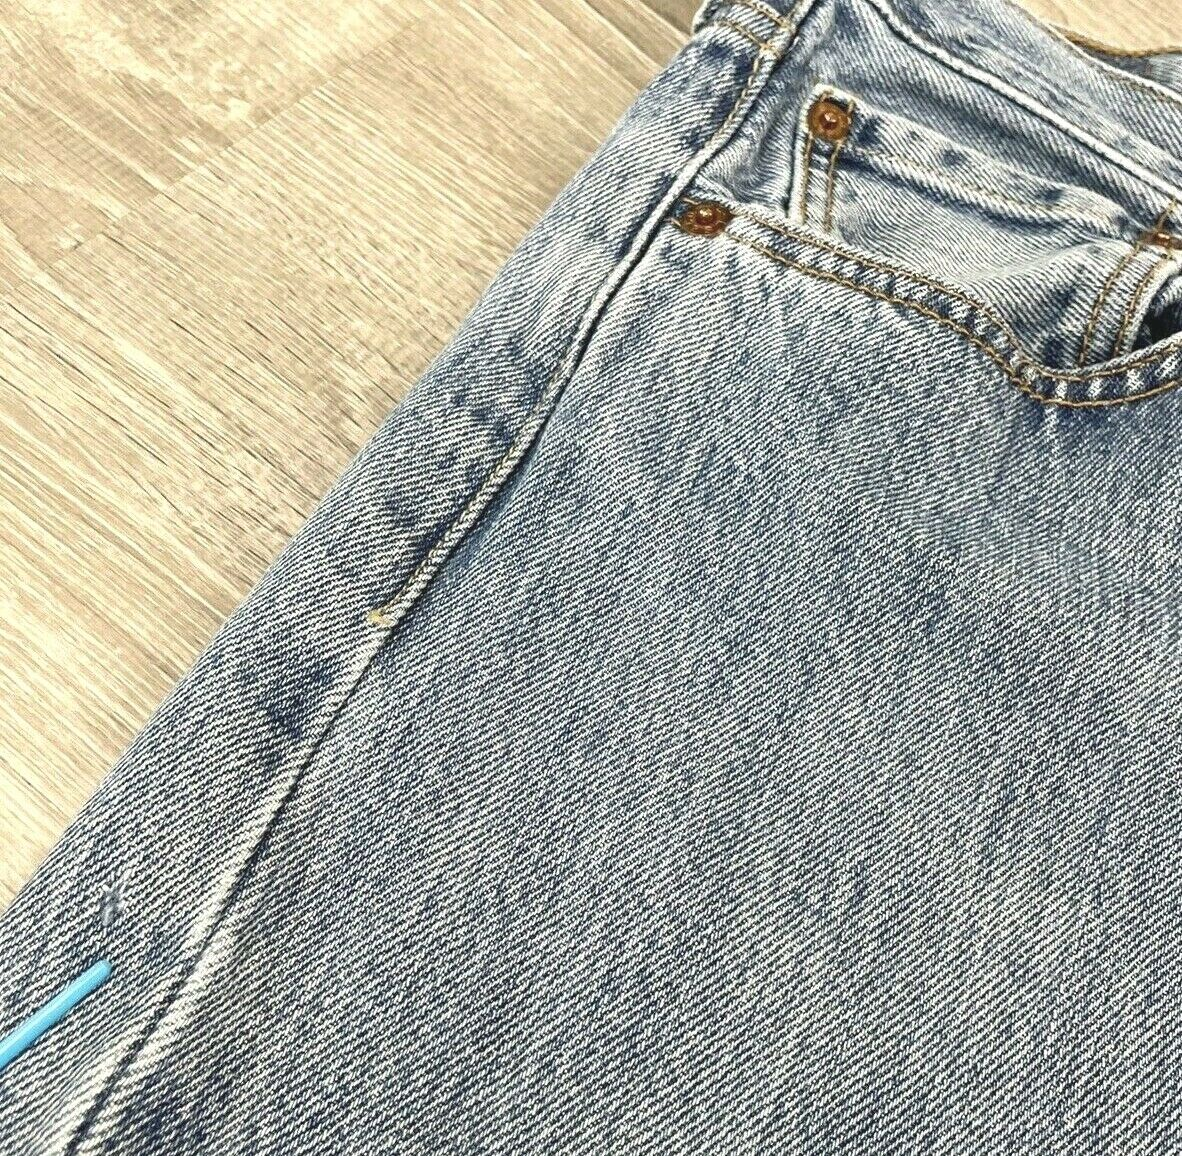 Levis 501 Jeans Mens Distressed Worn In MEASURES … - image 8